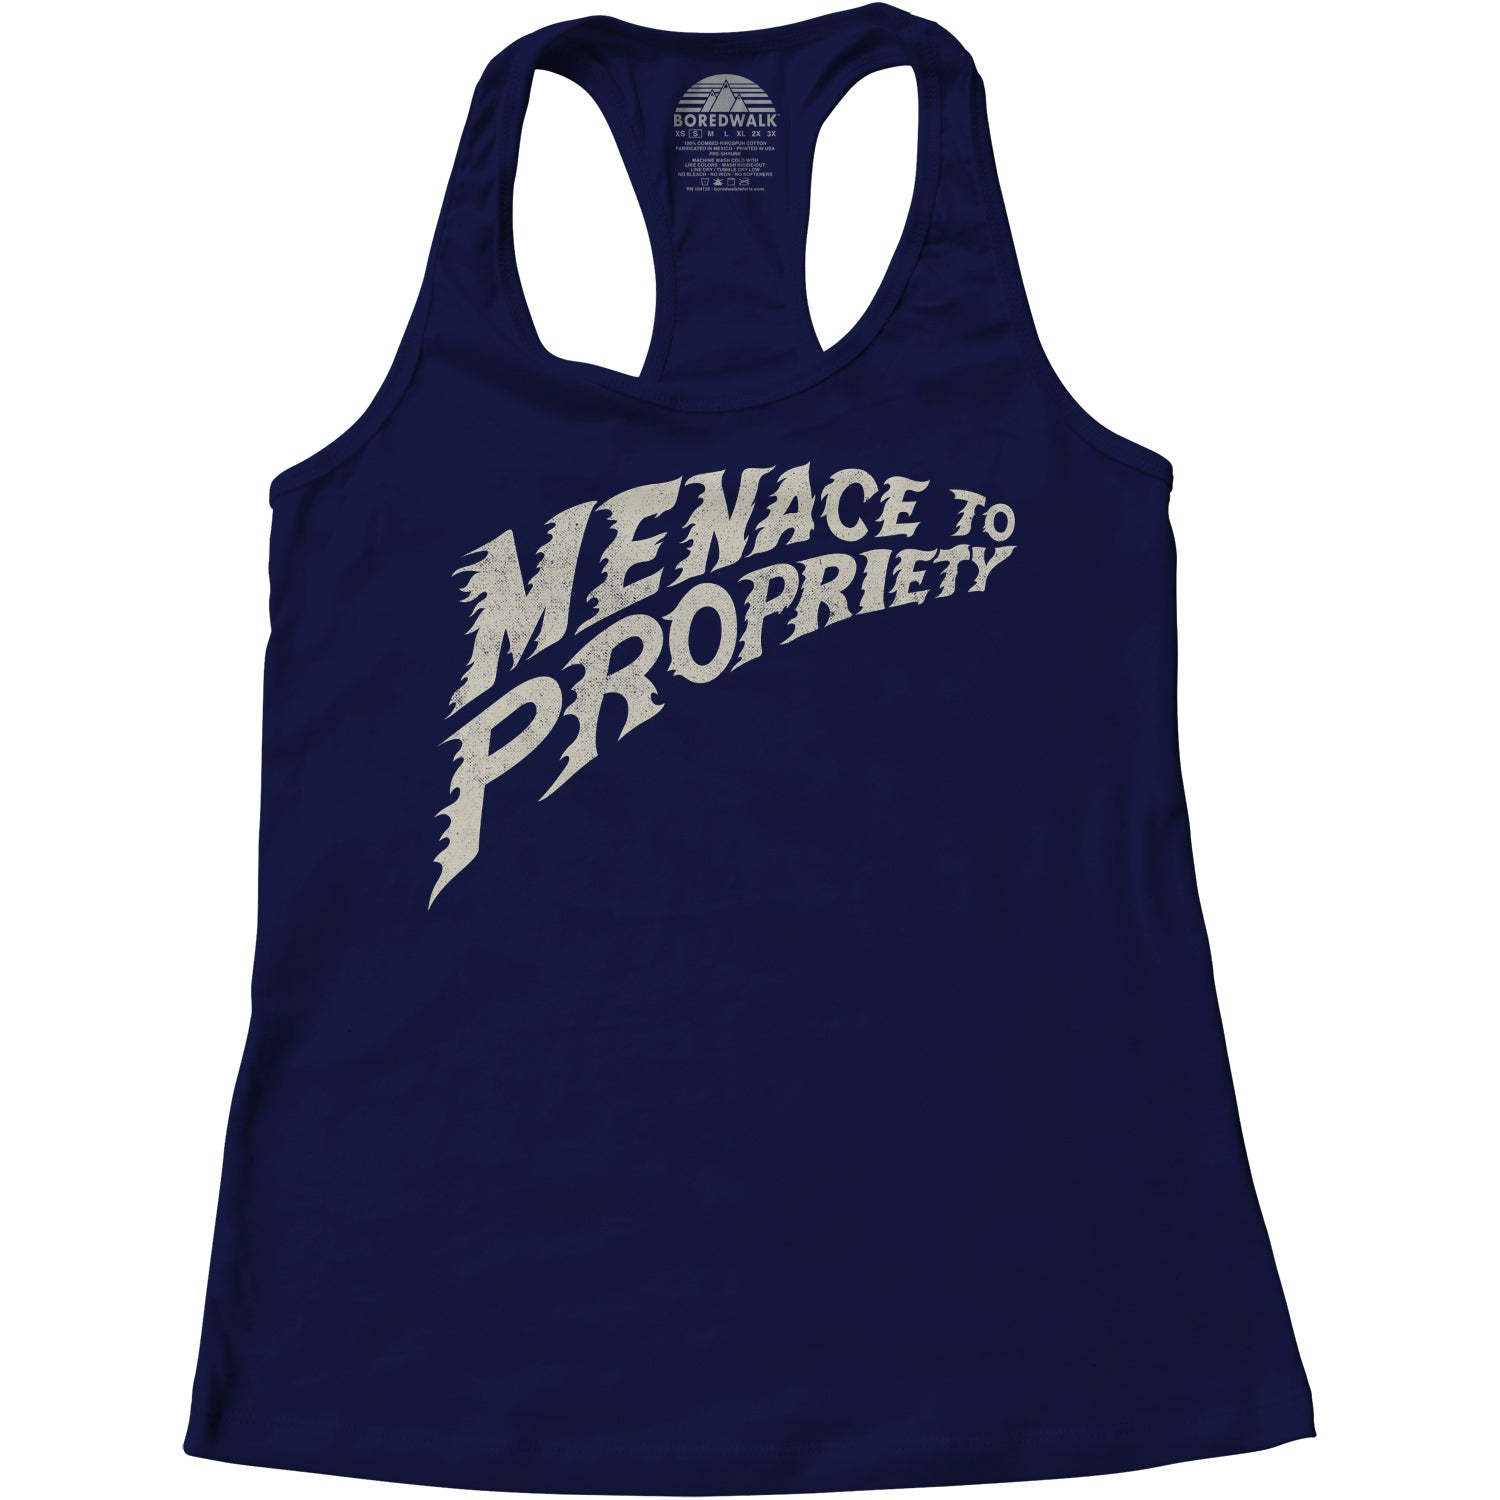 Women's Menace to Propriety Racerback Tank Top